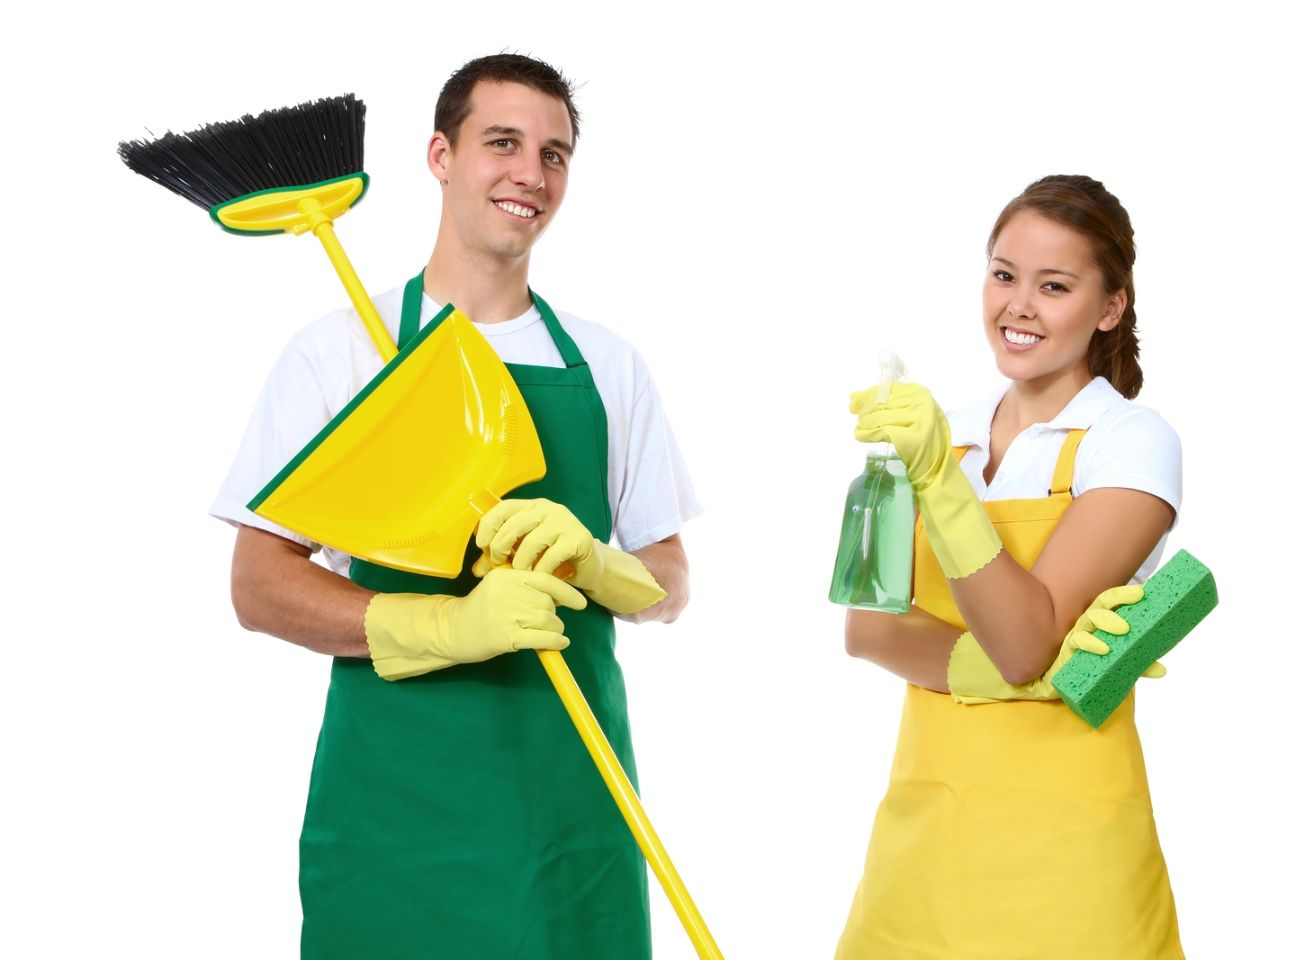 professional cleaning services hiring